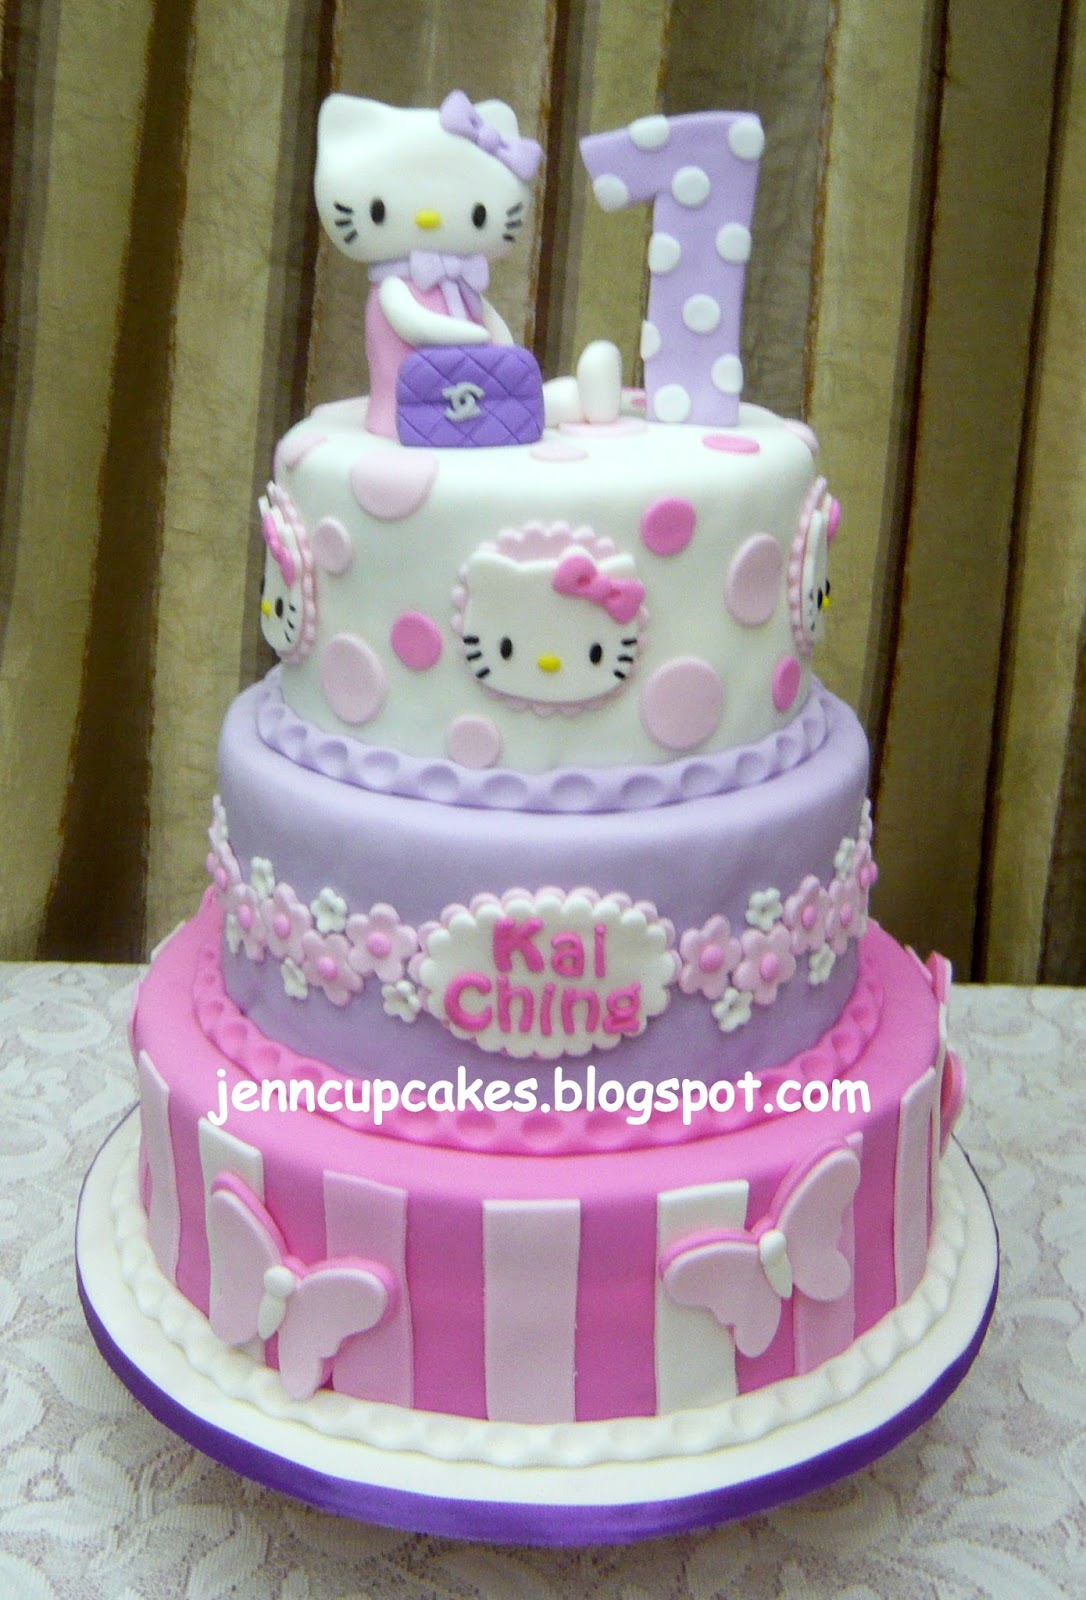 Jenn Cupcakes Muffins 3Tier Hello Kitty theme Cake